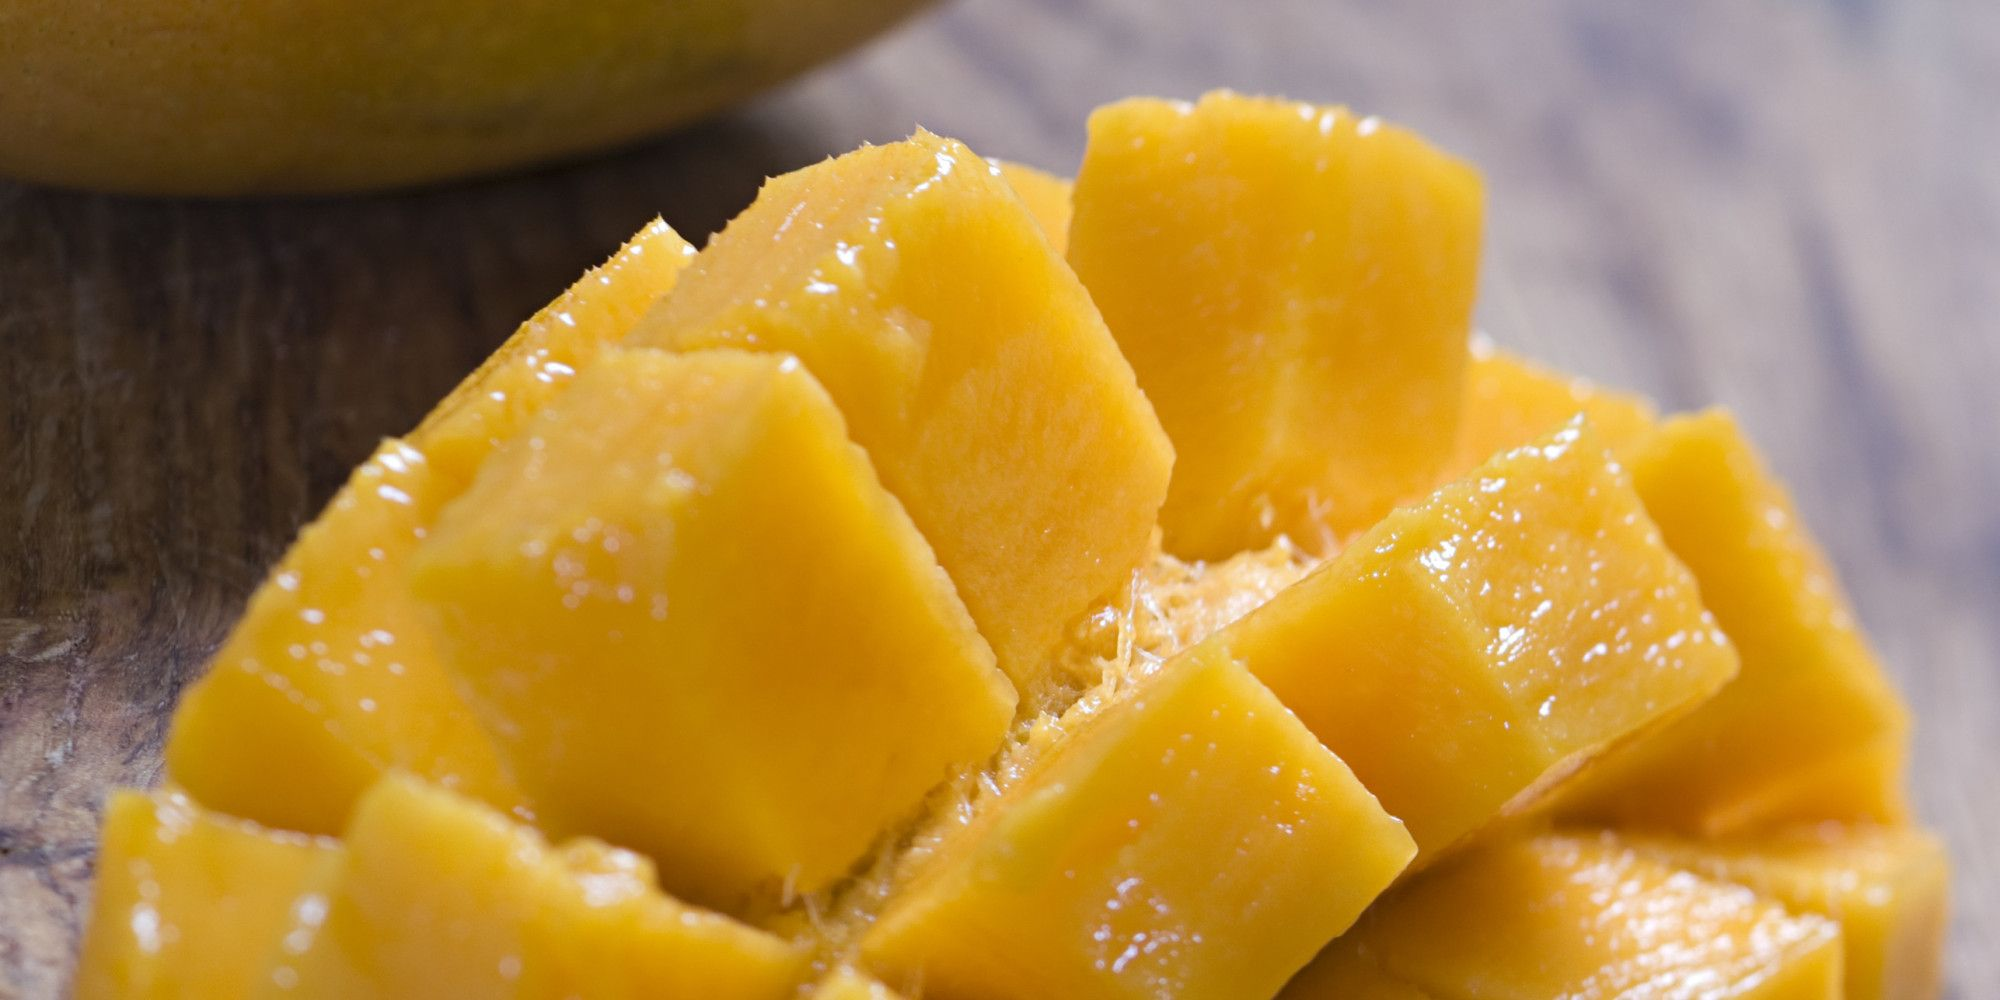 Once And For All, The Best Way To Cut A Mango